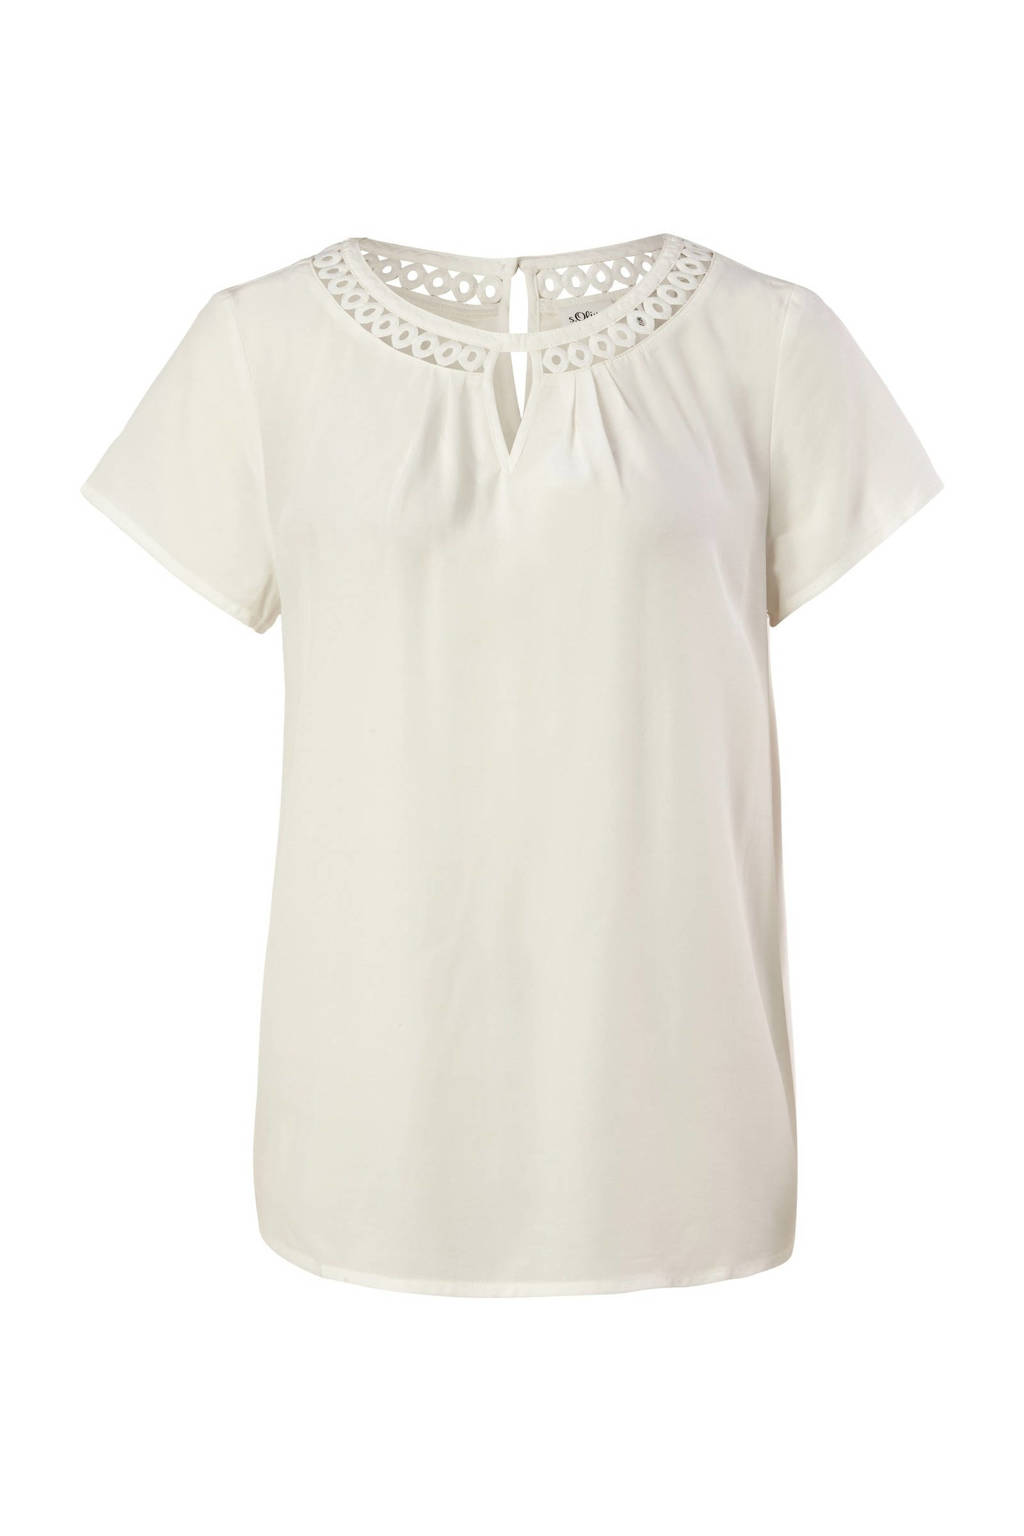 s.Oliver BLACK LABEL top met open detail wit, Wit